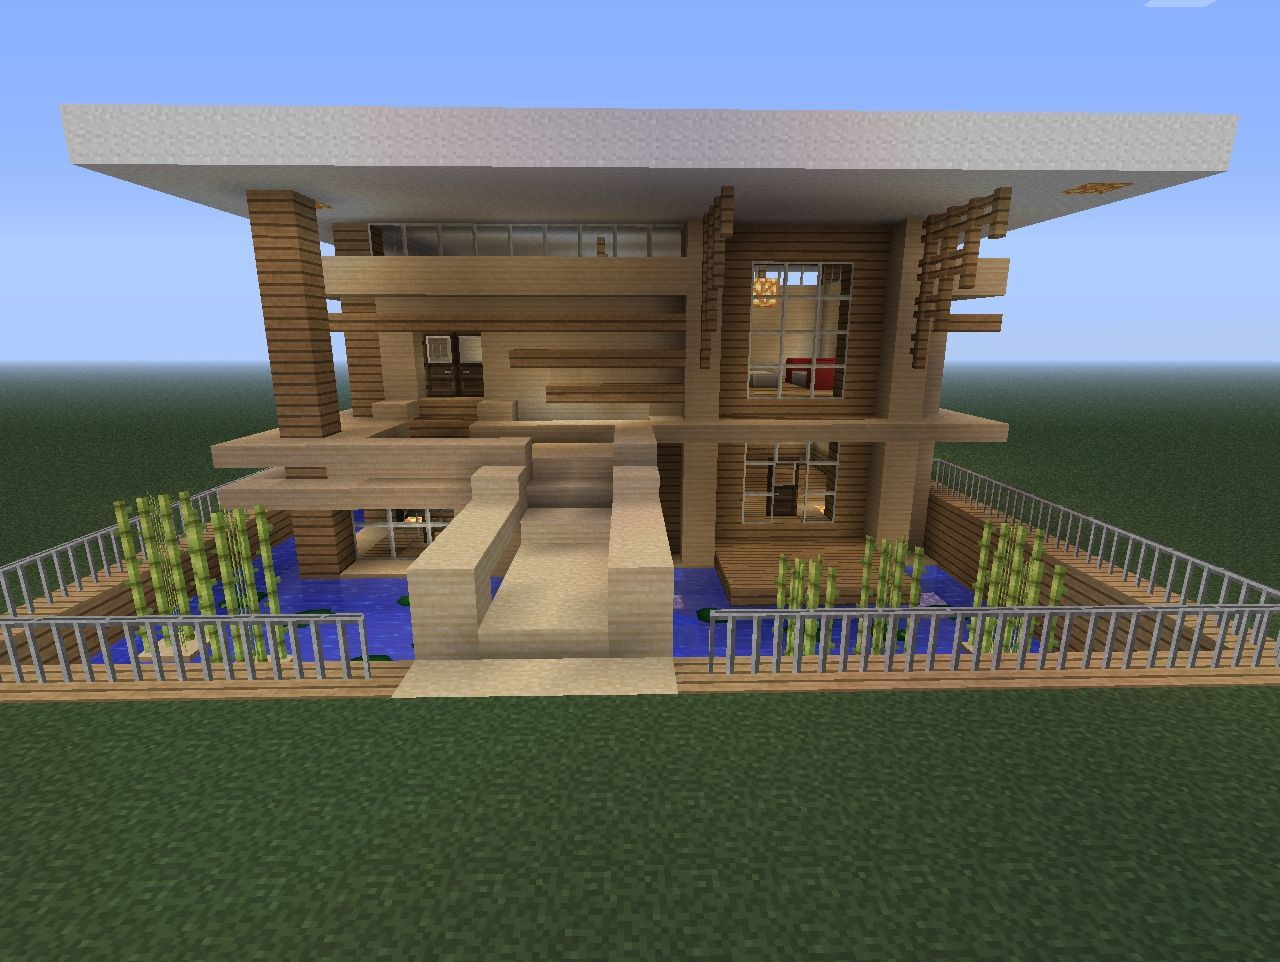 Faafaffaacfjpg Minecraft Ideas Pinterest - Cool minecraft house idea